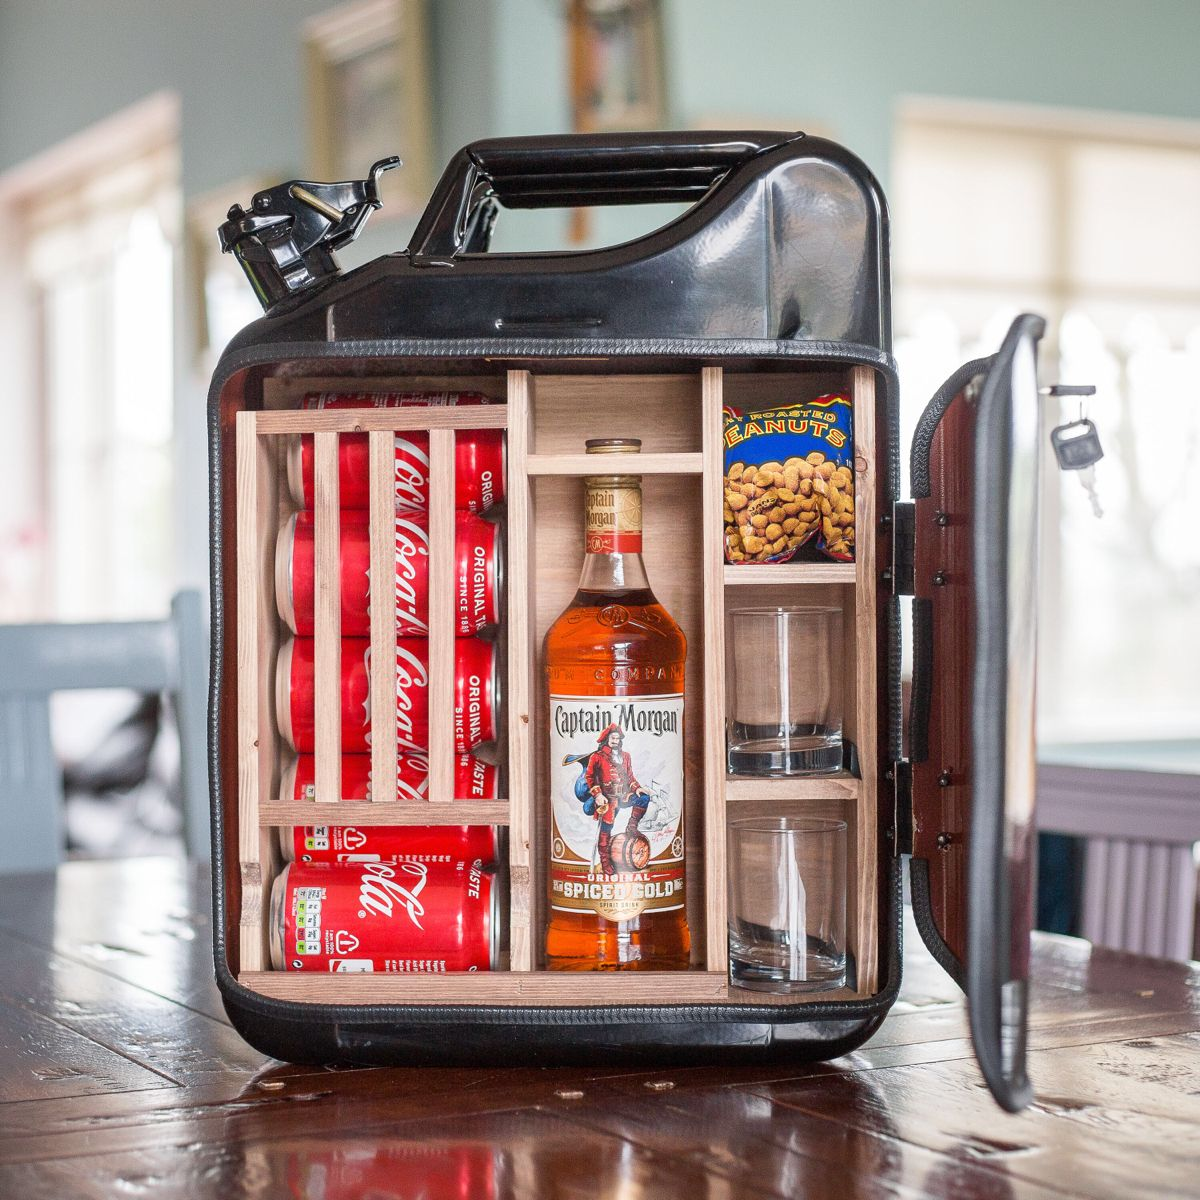 Personalized Jerry Can Mini Bar Etsy In 2020 Jerry Can Mini Bar Jerry Can Man Cave Gifts